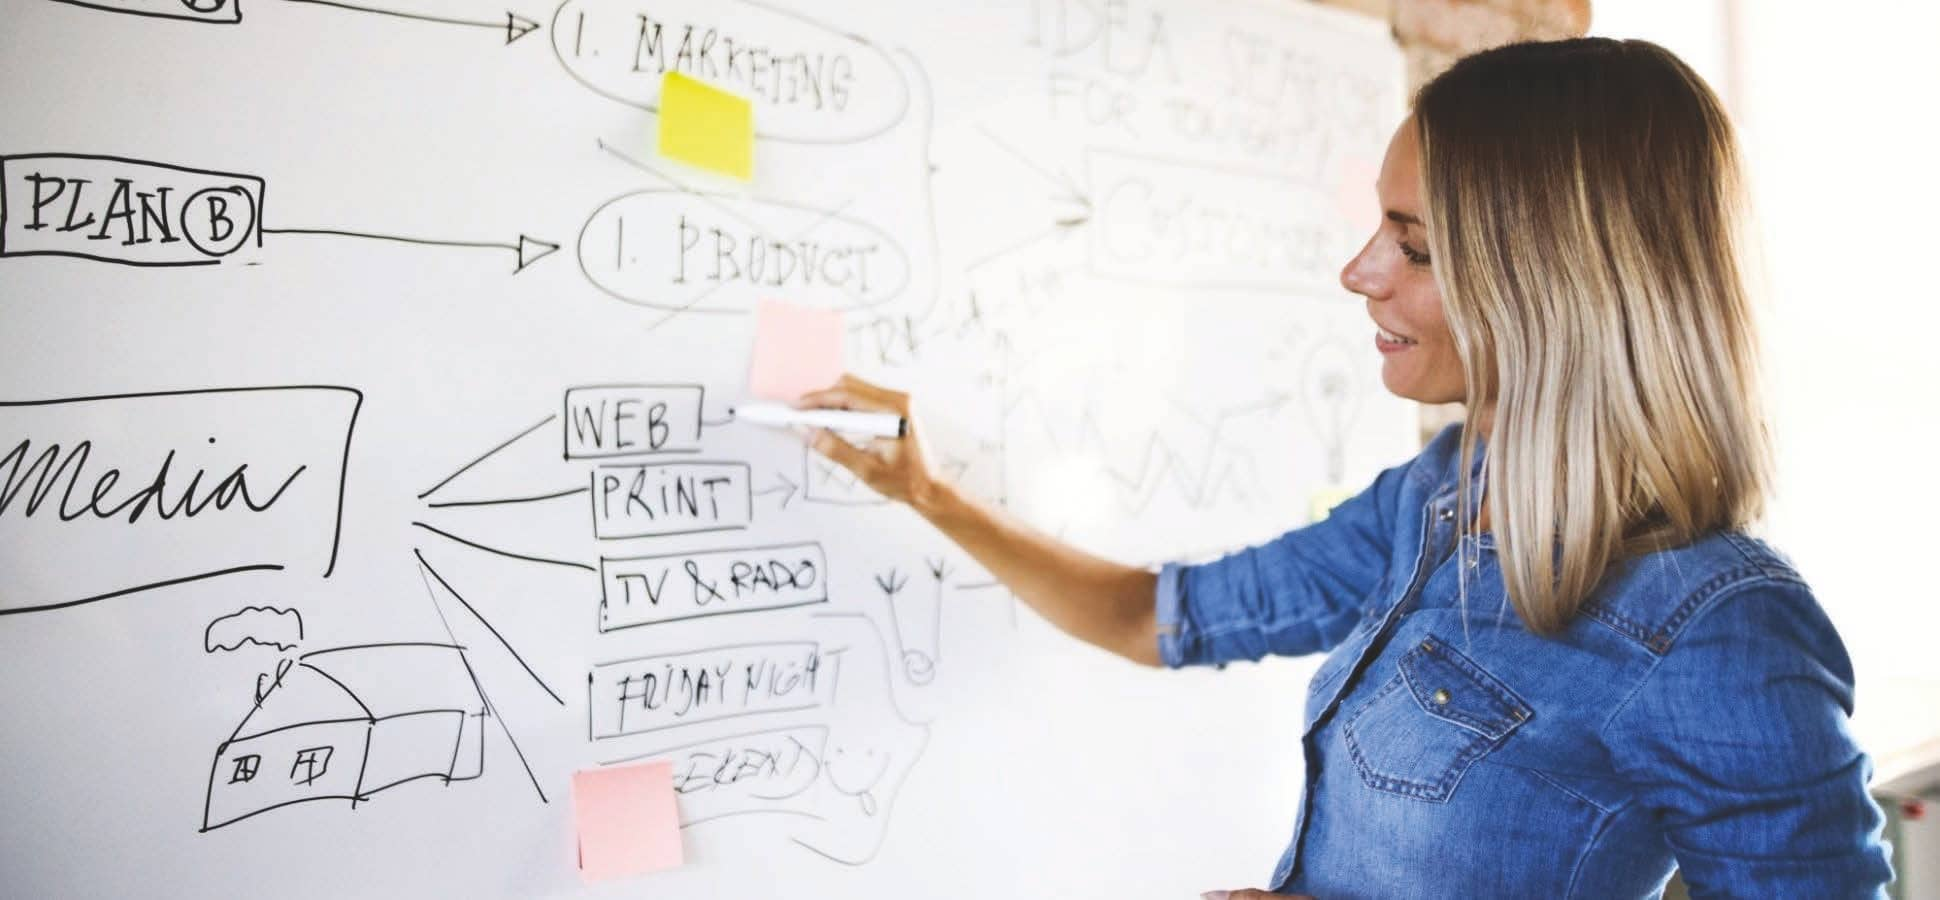 4 TIPS FOR SHOESTRING BUDGET PLANNING FOR MARKETING YOUR SMALL BUSINESS IN 2020